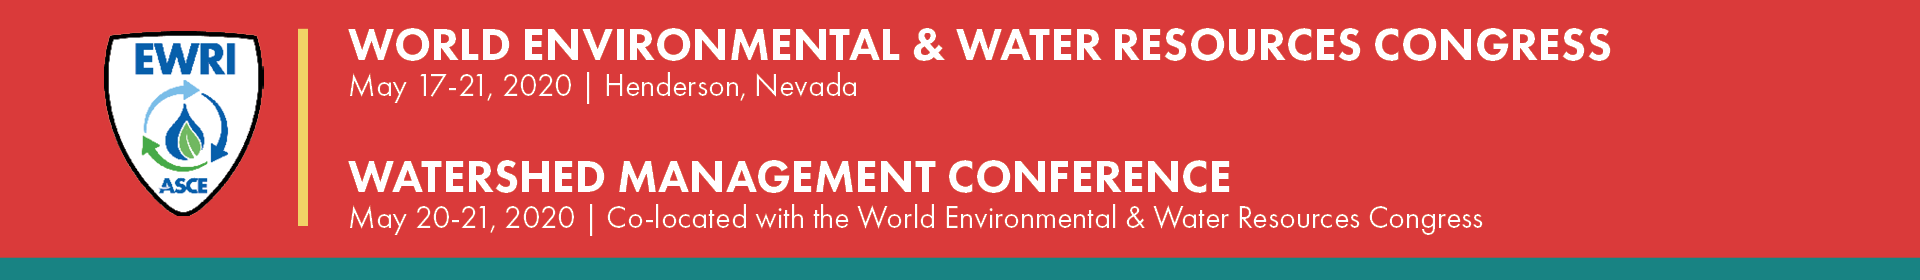 2020 EWRI Congress | Watershed Management Conference (co-located with the EWRI Congress)  Event Banner